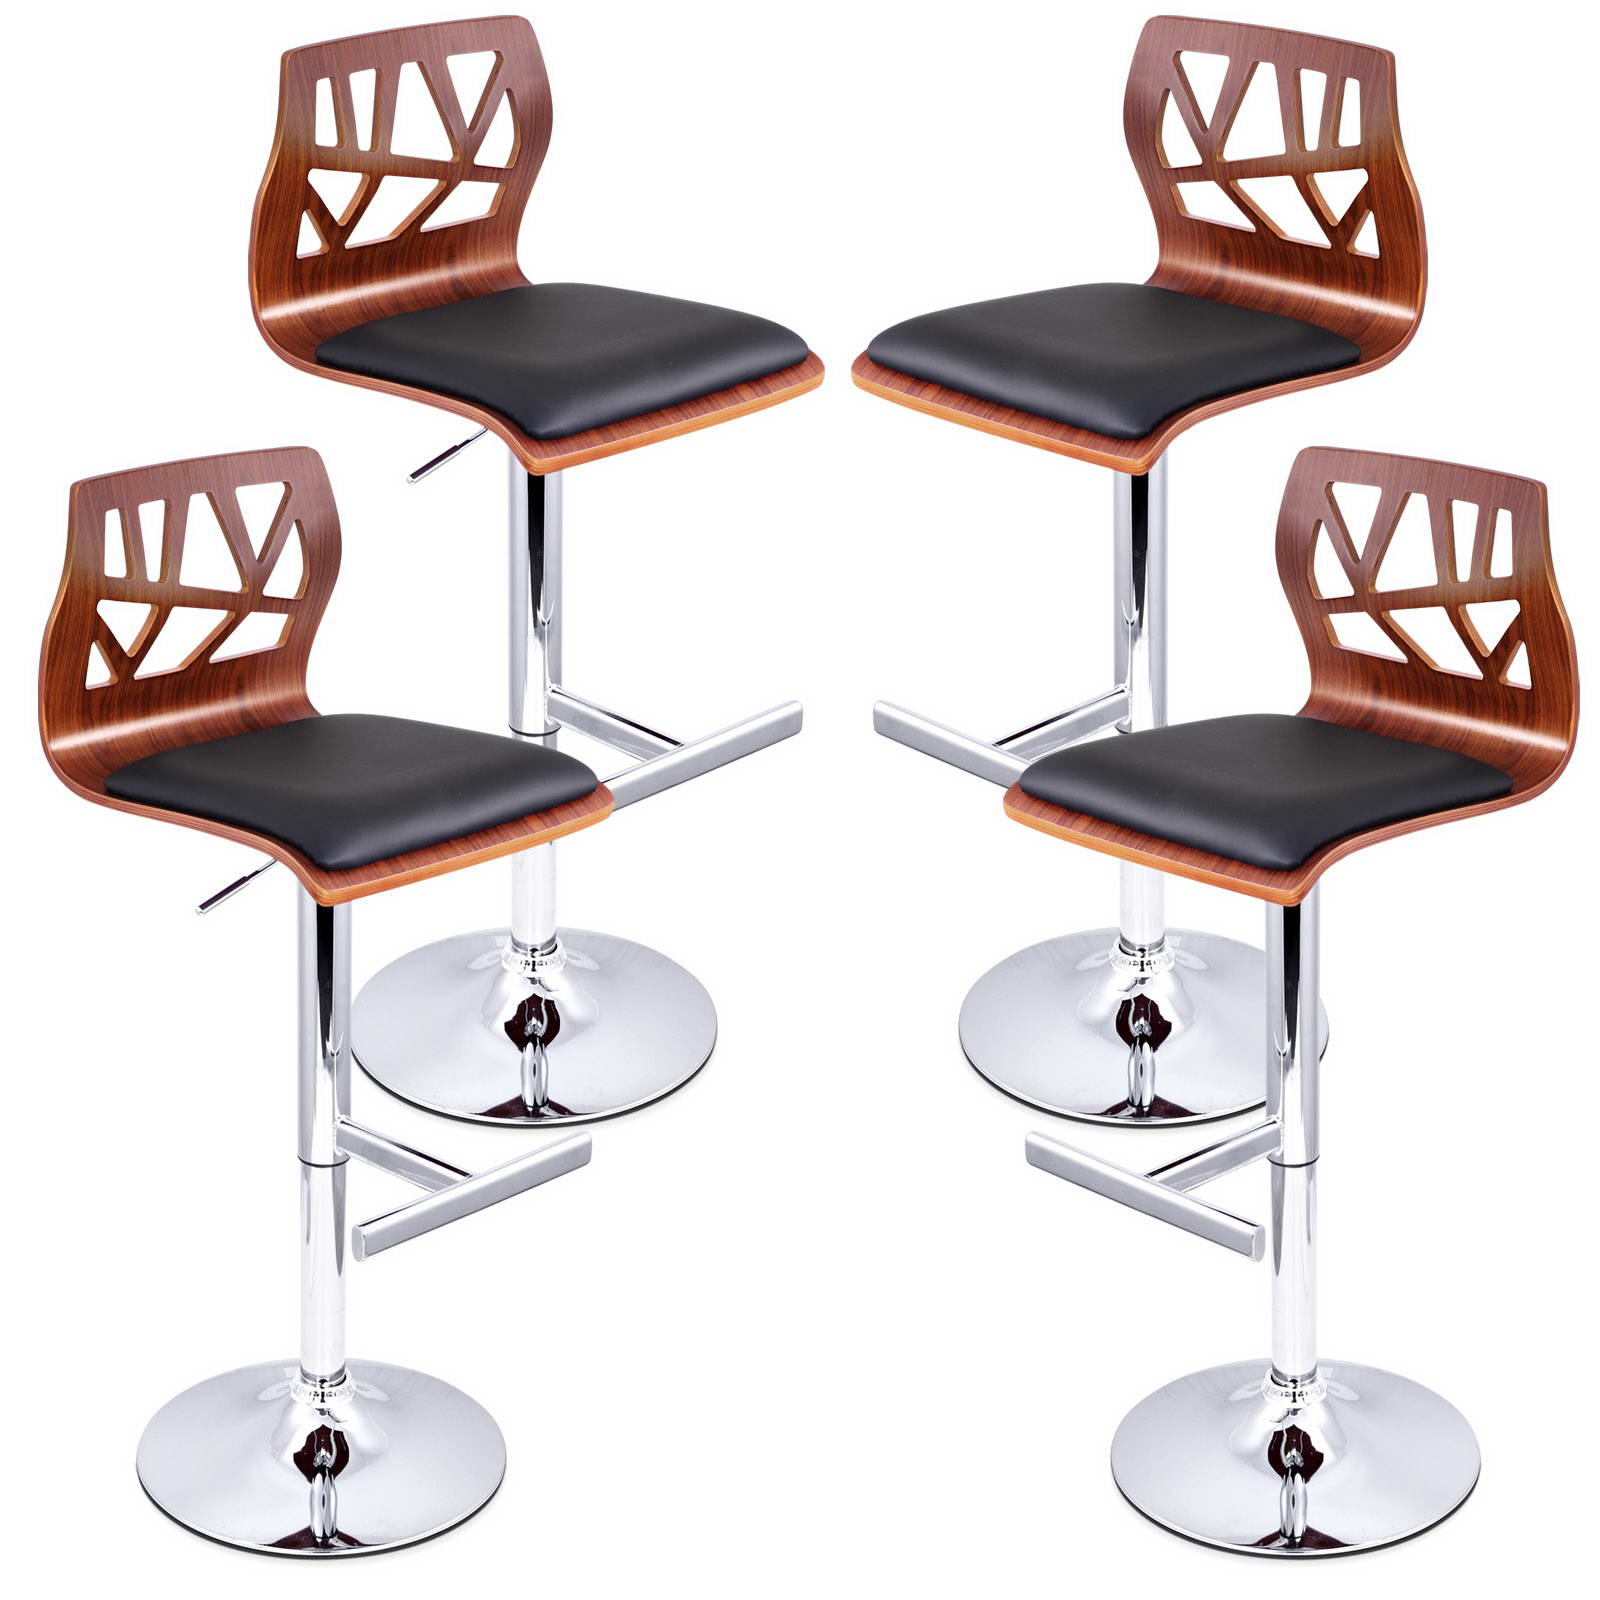 details about 4x wooden bar stool kitchen dining chair gas lift swivel